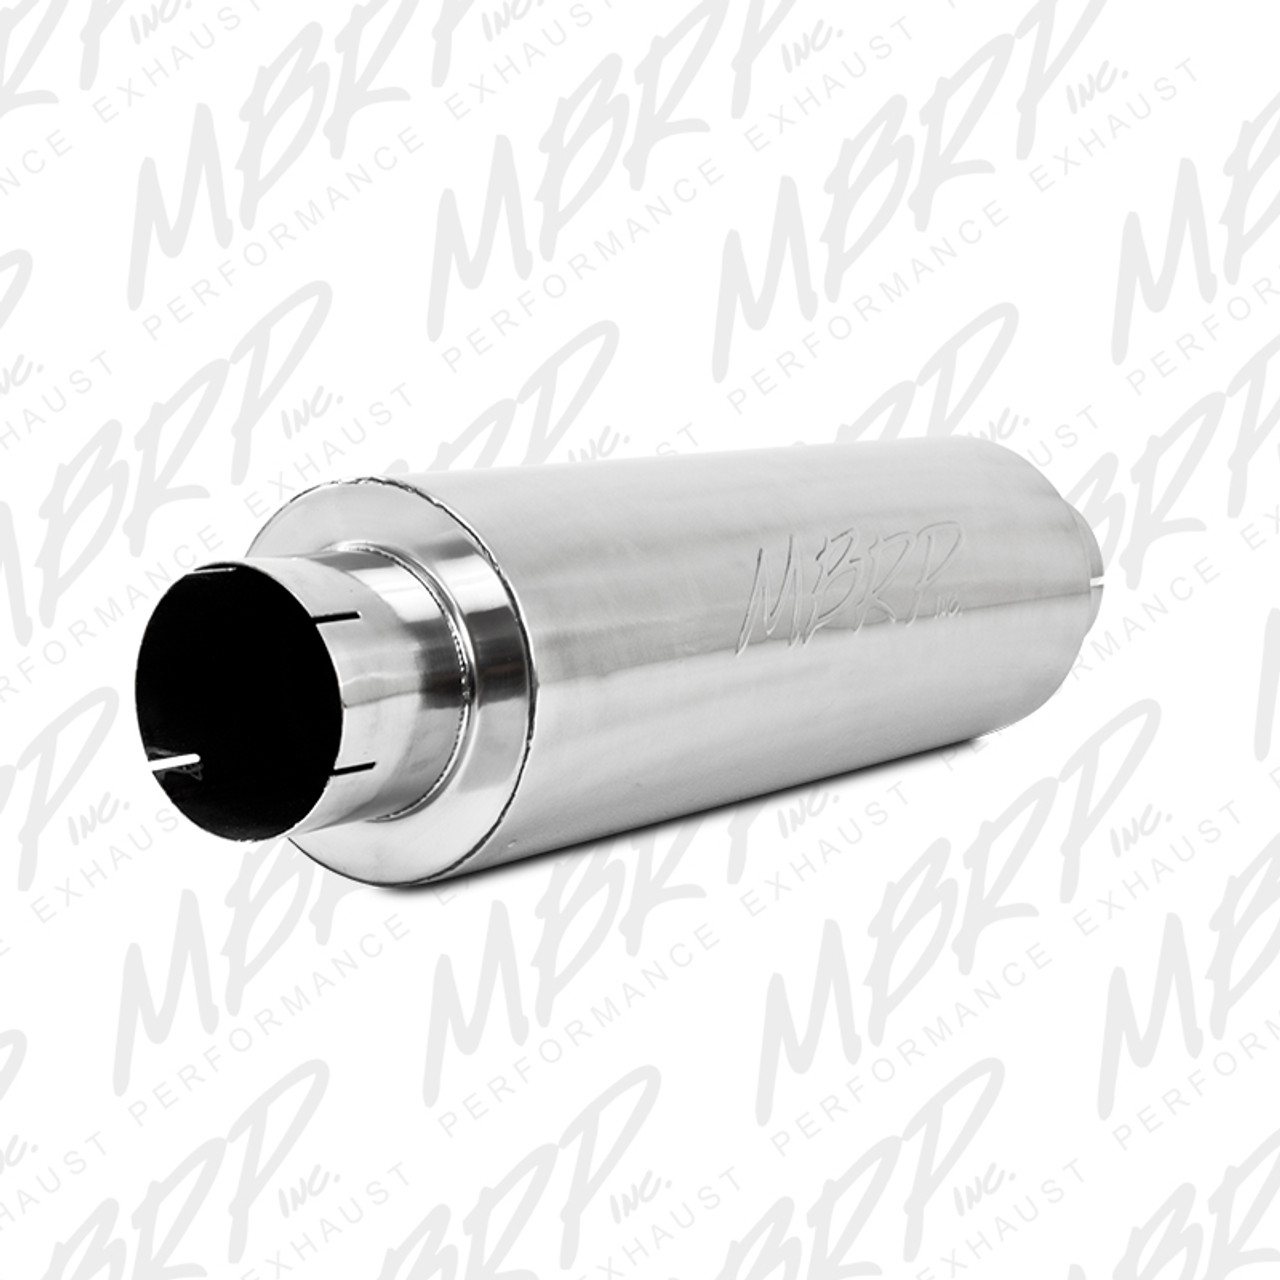 """MBRP Universal Quiet Tone Muffler, 5"""" In/Out, 8"""" Dia. Body, 31"""" Overall, T409"""